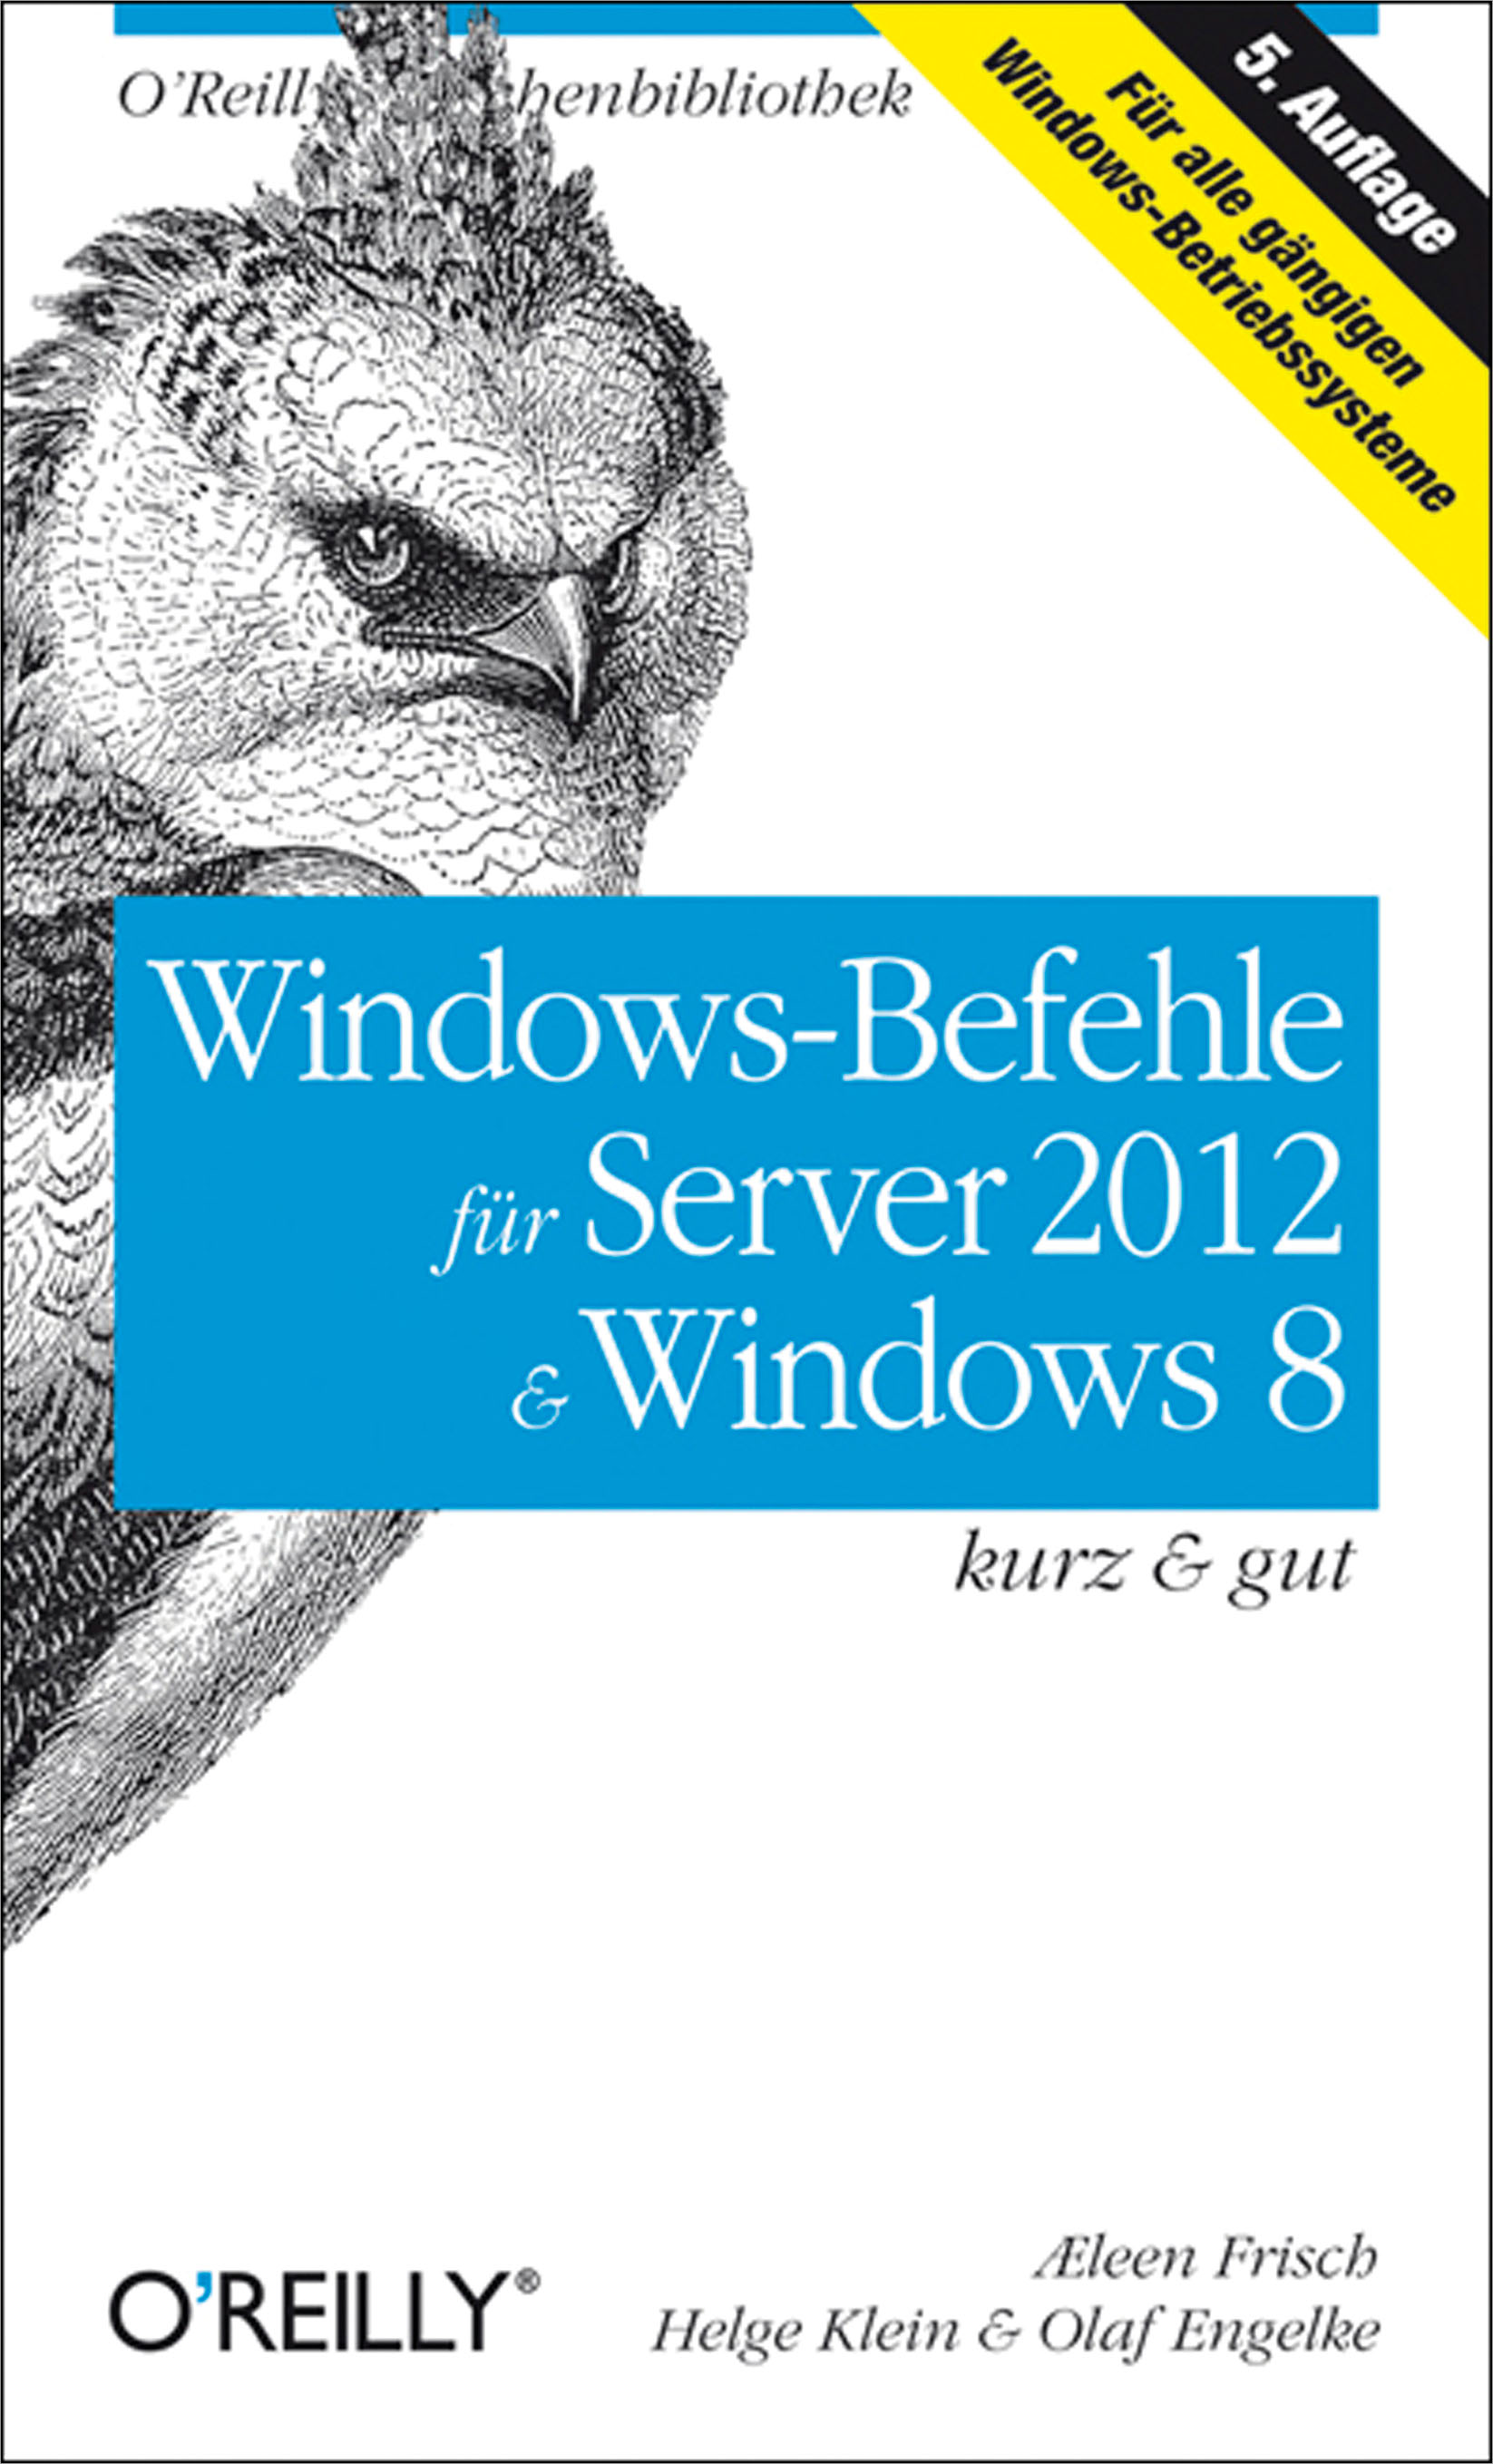 цены Æleen Frisch Windows-Befehle für Server 2012 & Windows 8 kurz & gut